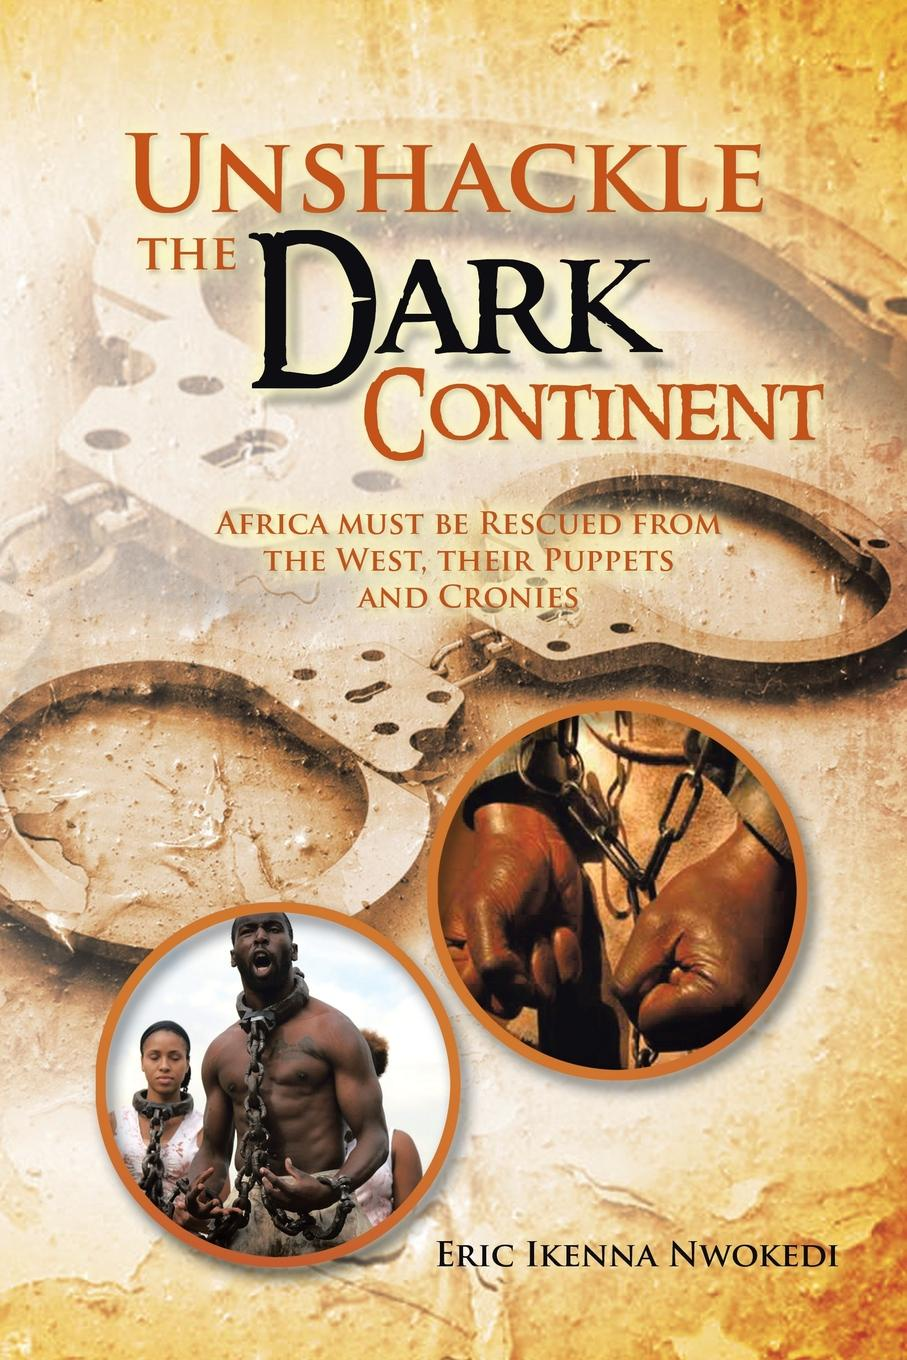 Eric Ikenna Nwokedi Unshackle the Dark Continent. Africa Must Be Rescued from West, Their Puppets and Cronies